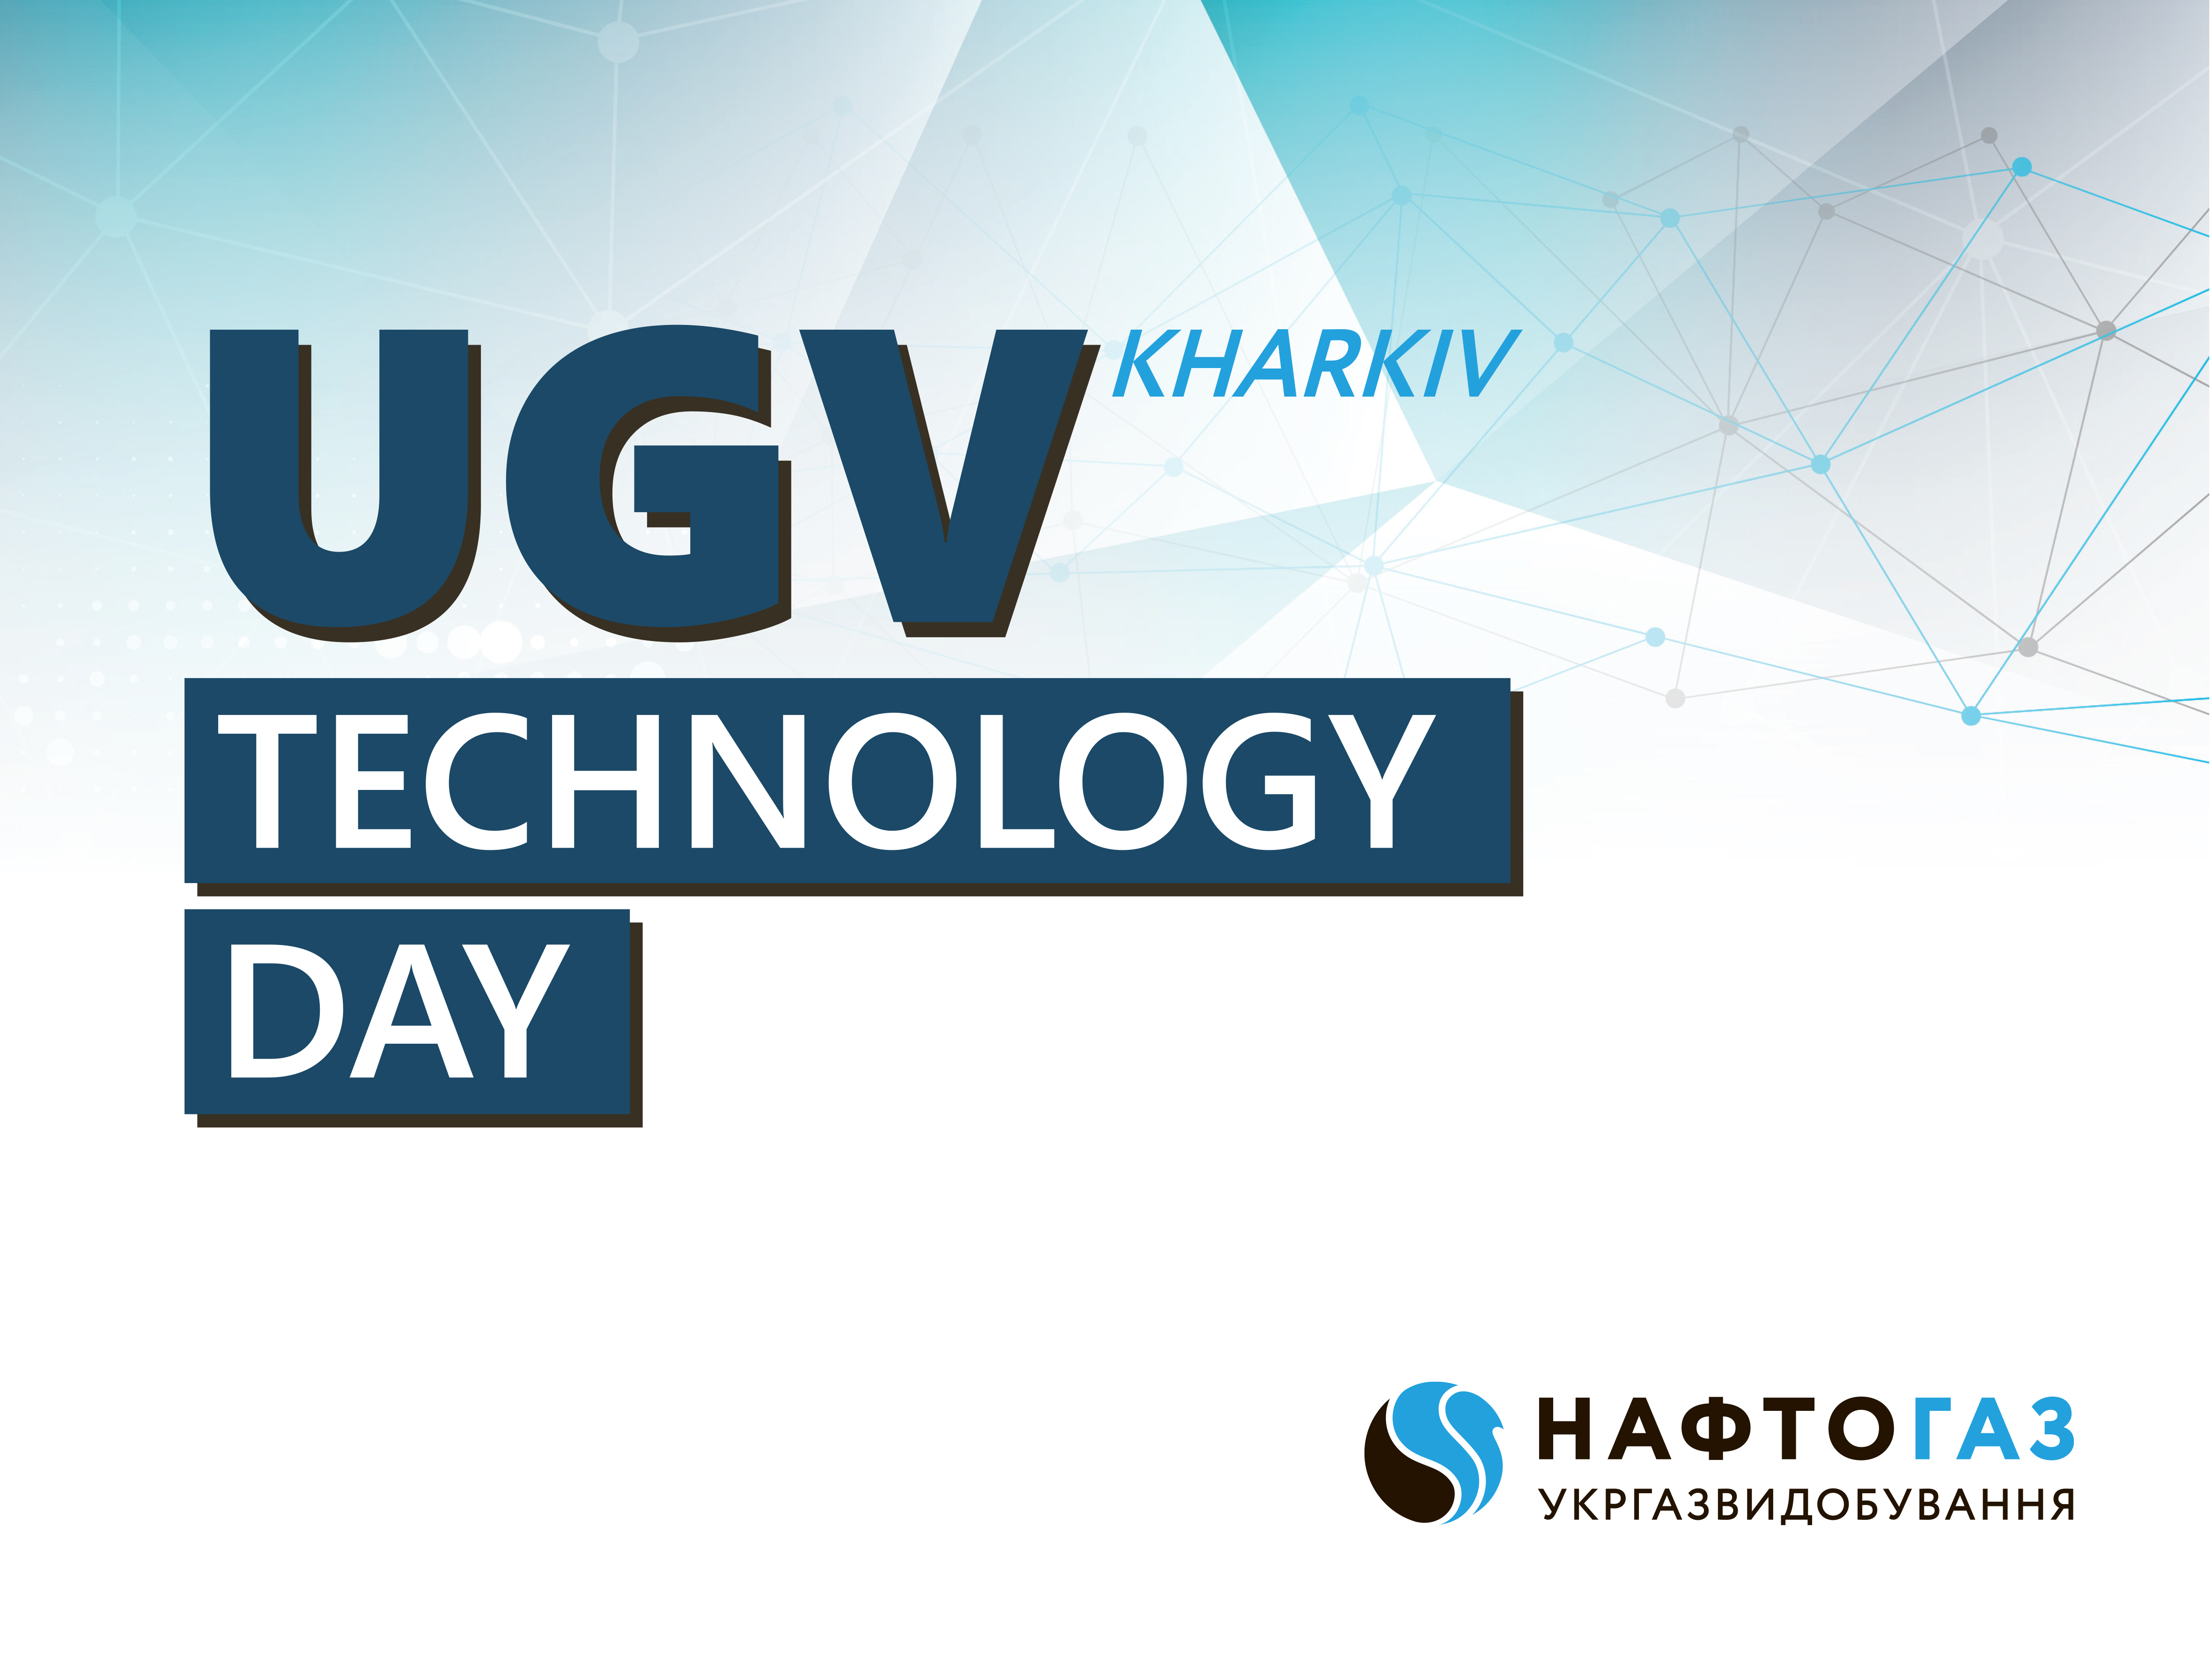 We invite to UGV Technology Day Kharkiv, regional meeting with suppliers